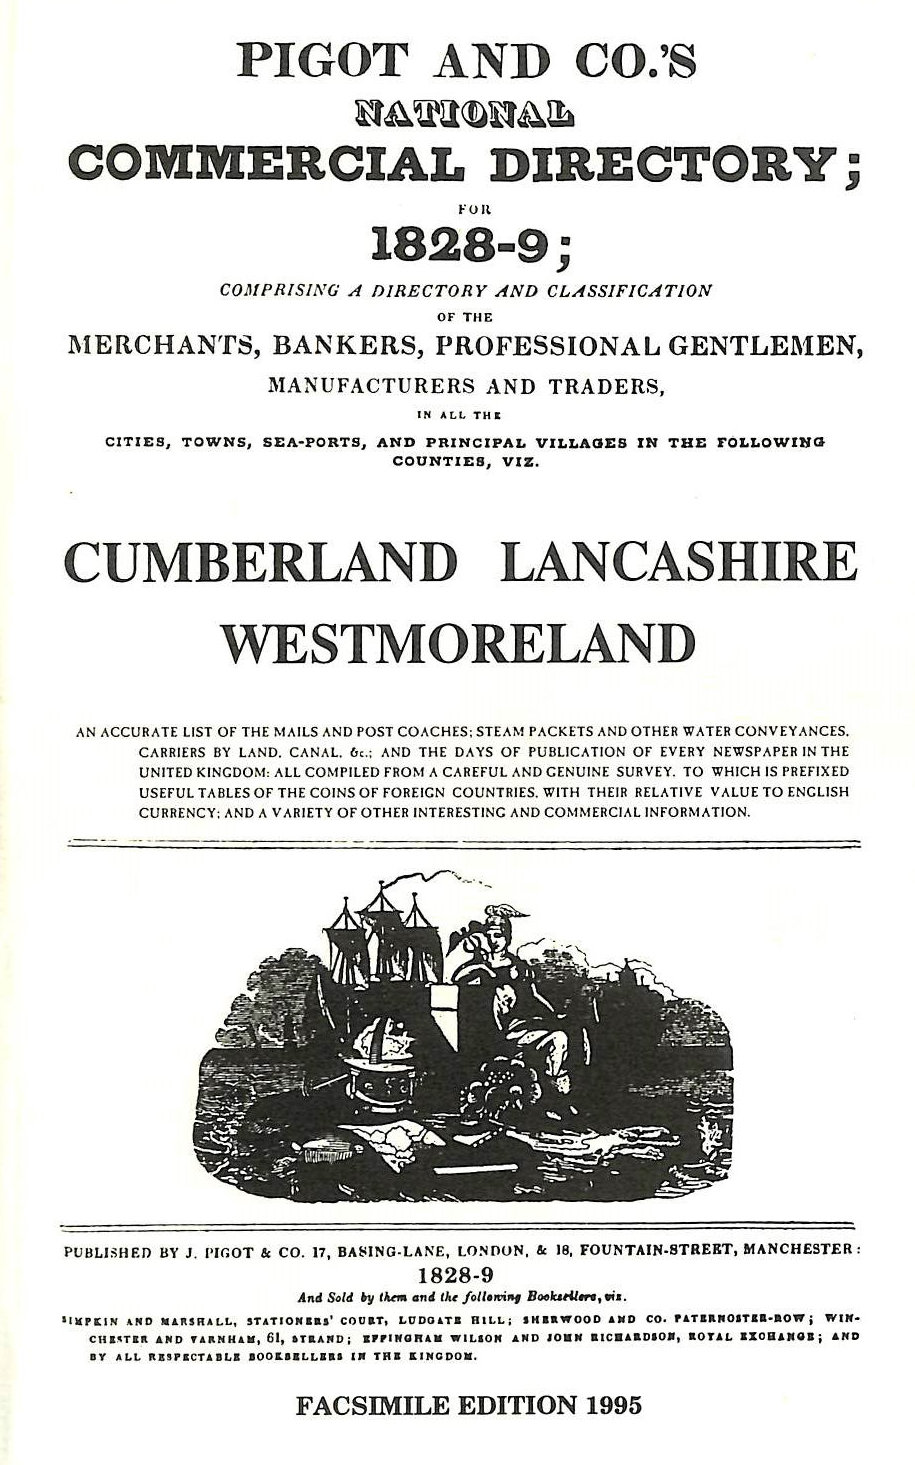 Image for National commercial directory: Cumberland, Lancashire, Westmoreland